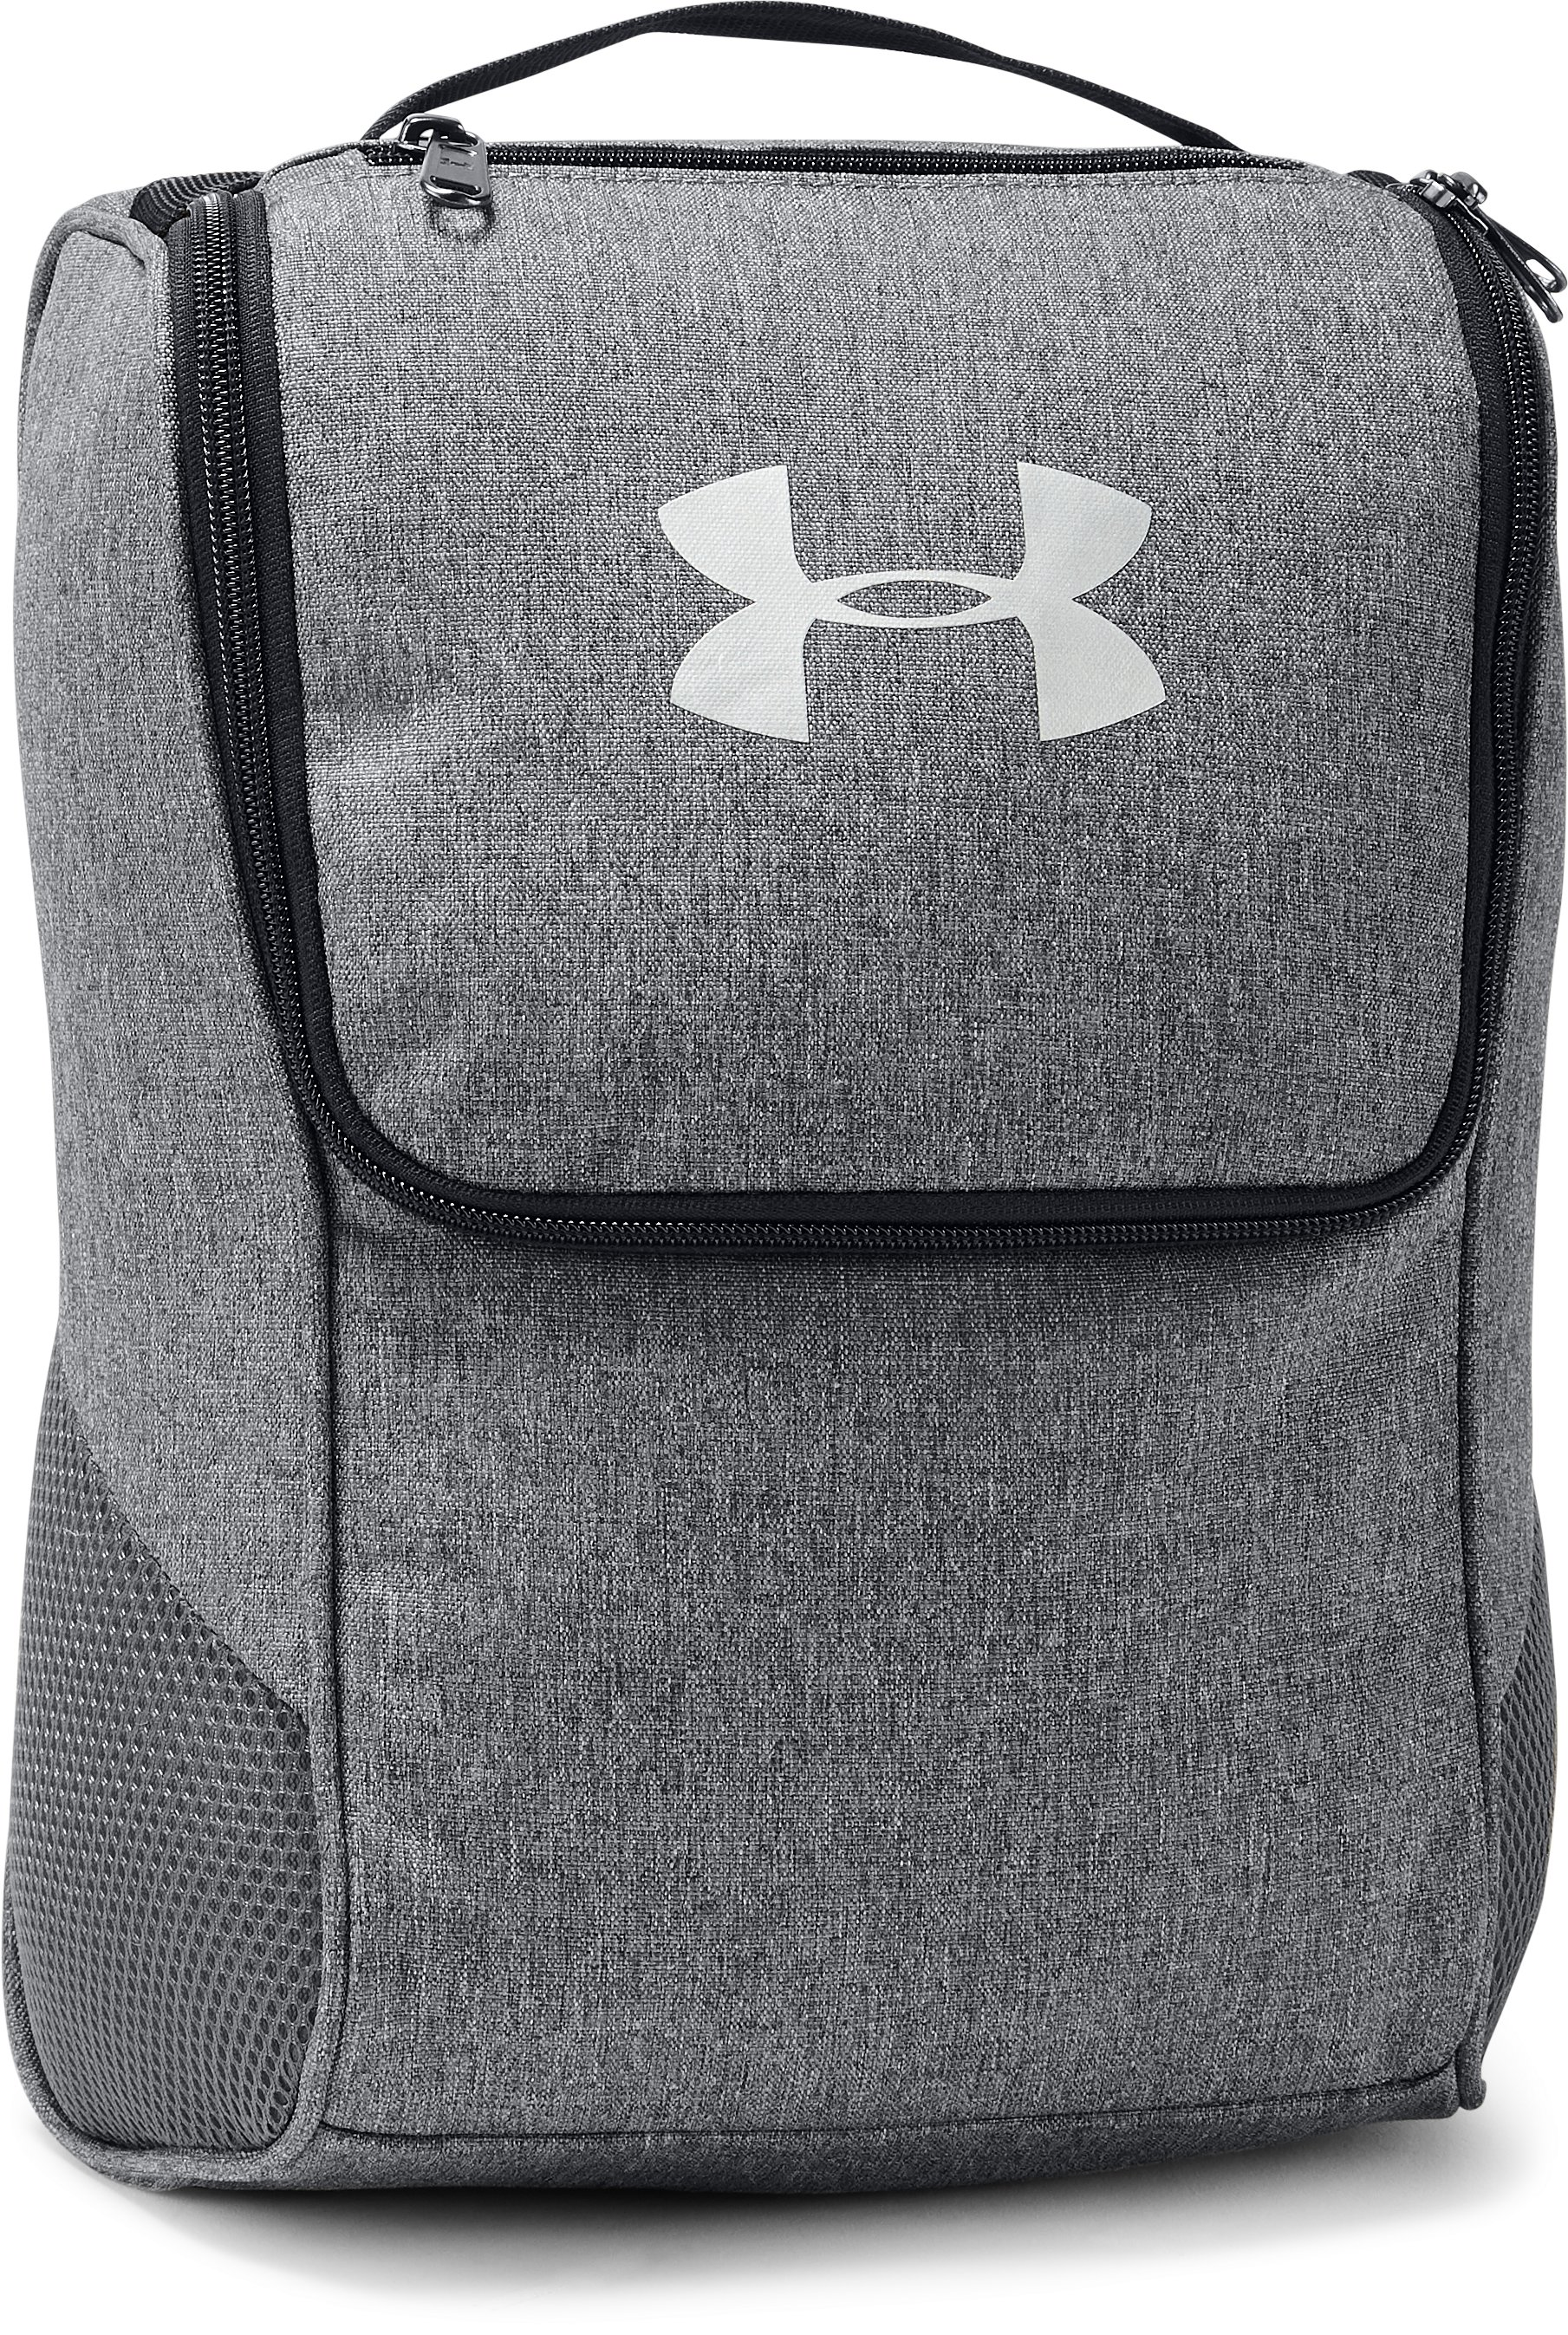 UA Shoe Bag, GRAPHITE MEDIUM HEATHER,